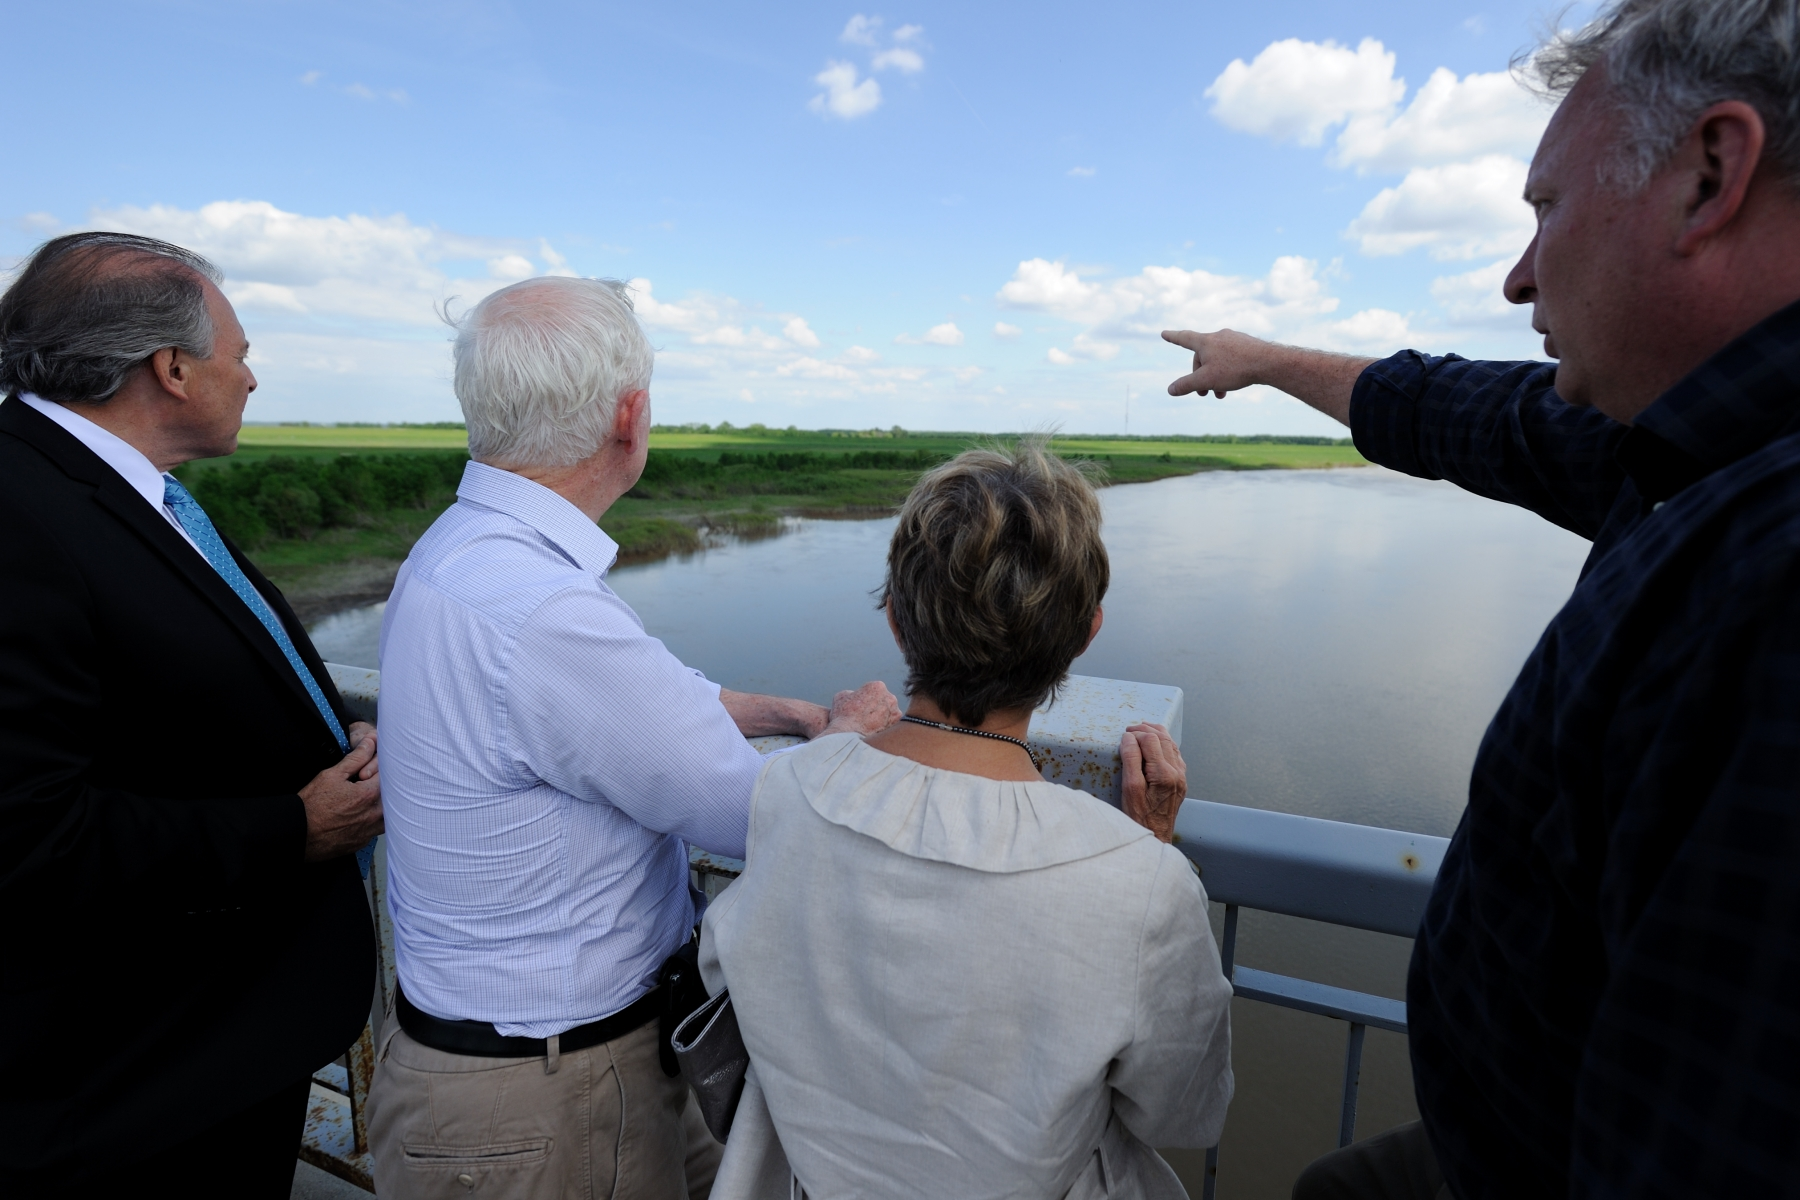 Their Excellencies, accompanied by the Honourable Ron Lemieux, Minister of Local Government, as well as officials from the Manitoba Water Stewardship and Emergency Measures Organization, toured the Red River Floodway Inlet Control Structure.